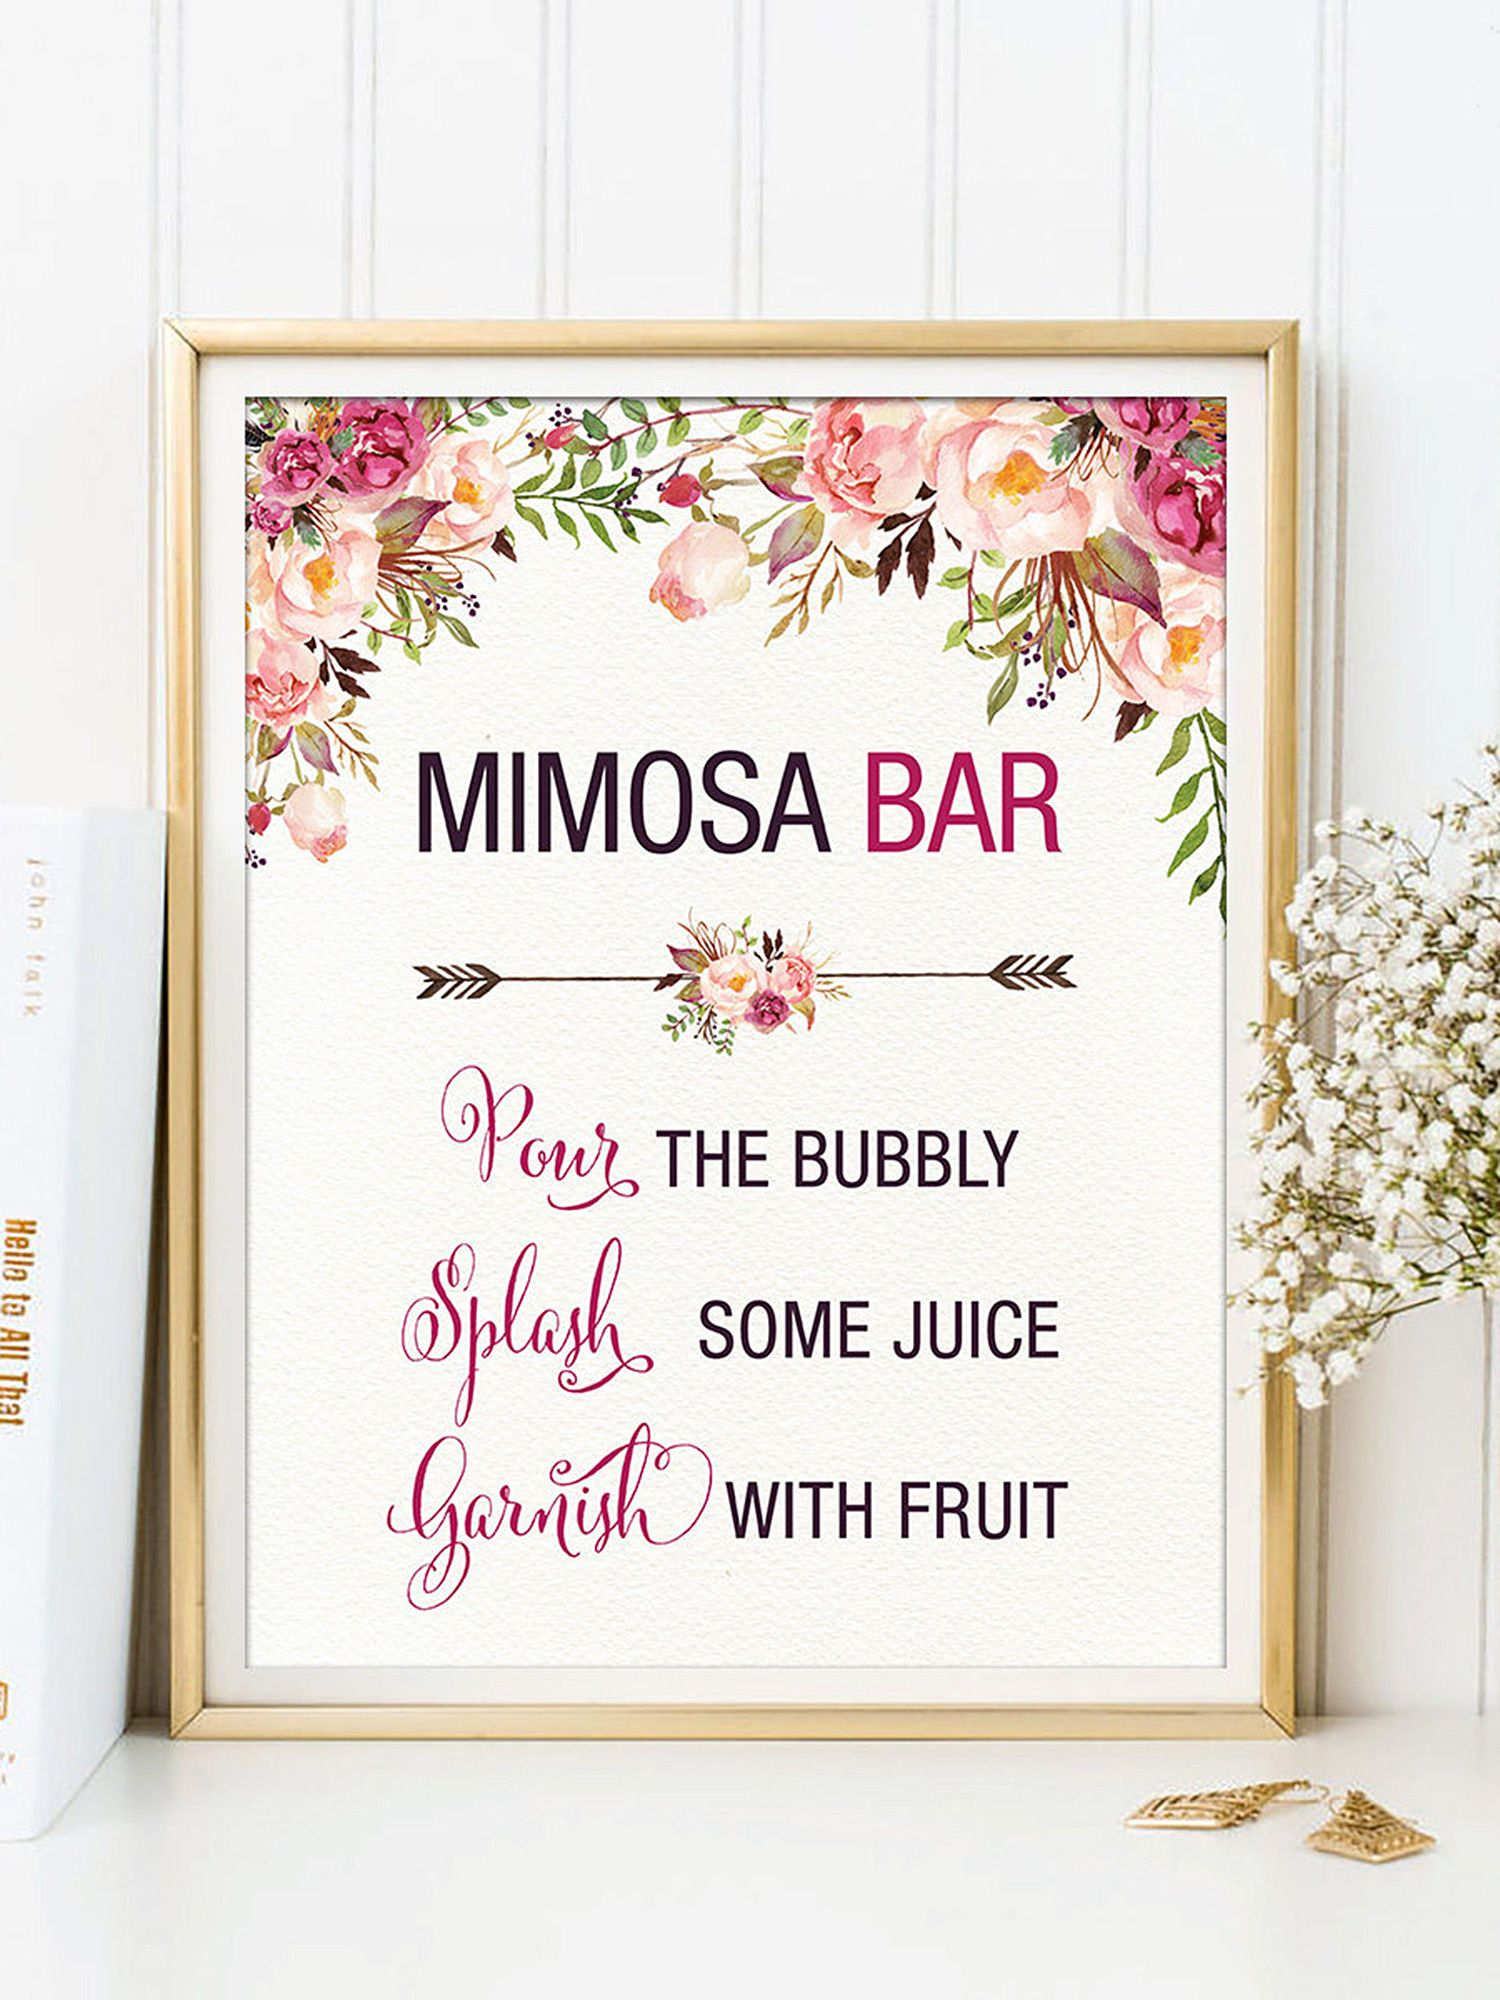 graphic regarding Free Printable Mimosa Bar Sign called 35 Bachelorette Social gathering Decorations That Are Enjoyable and